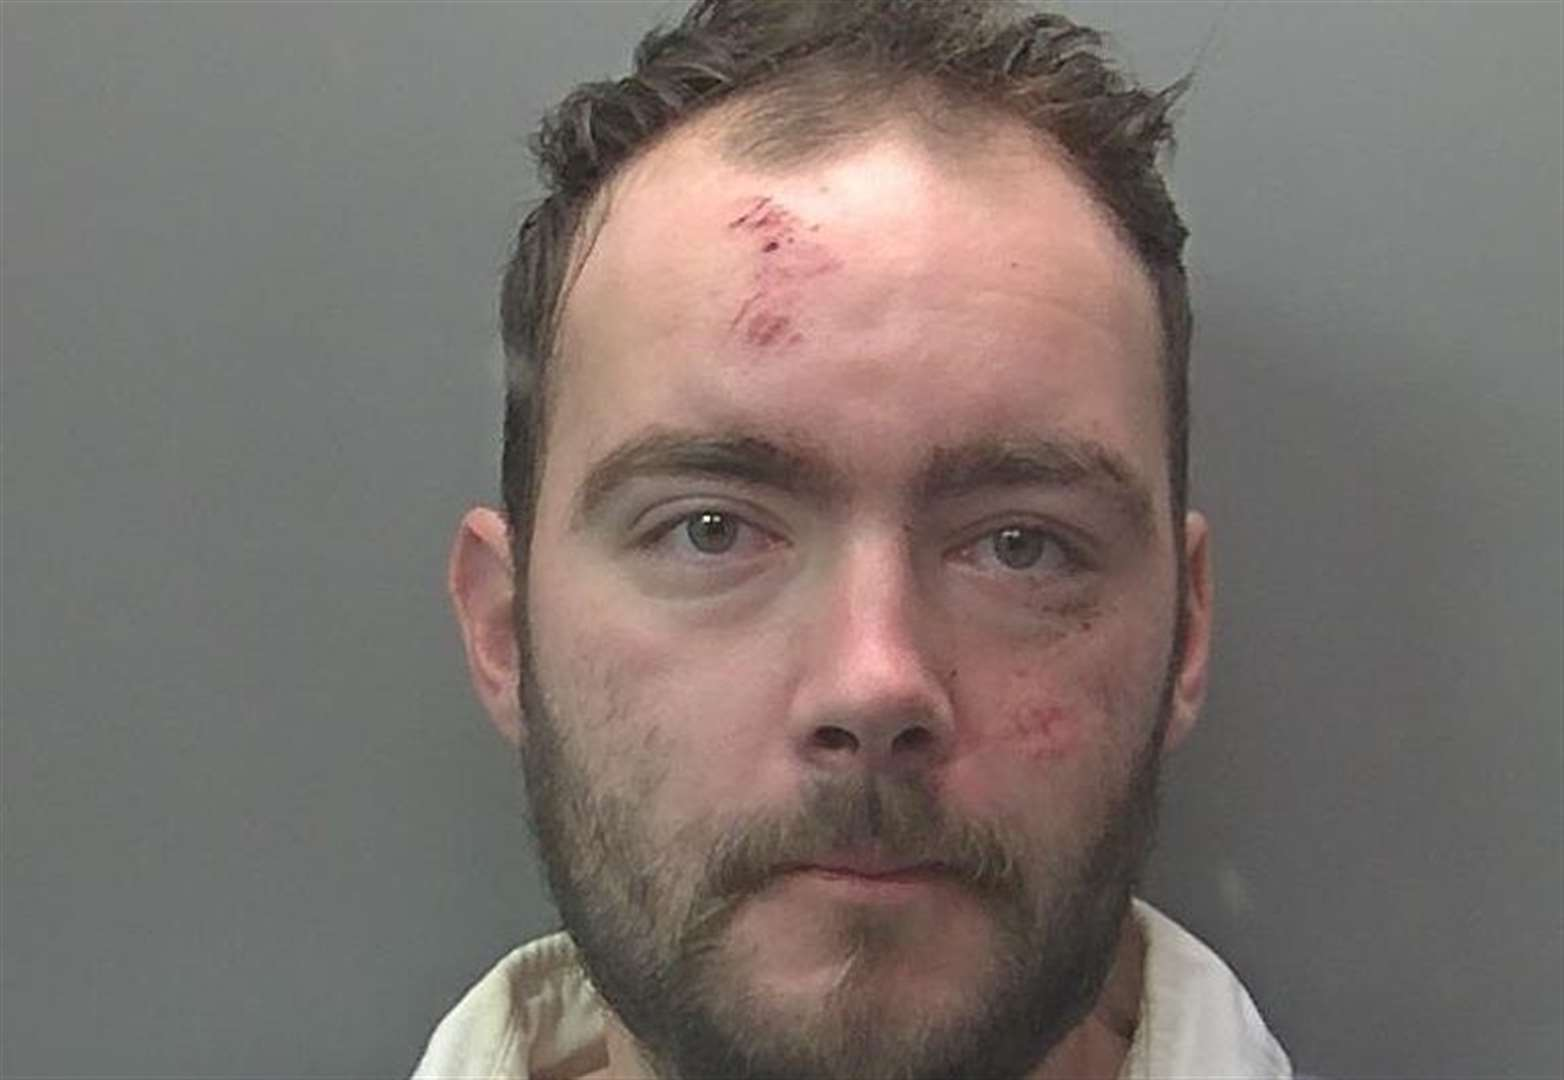 Burglar jailed for 13 months